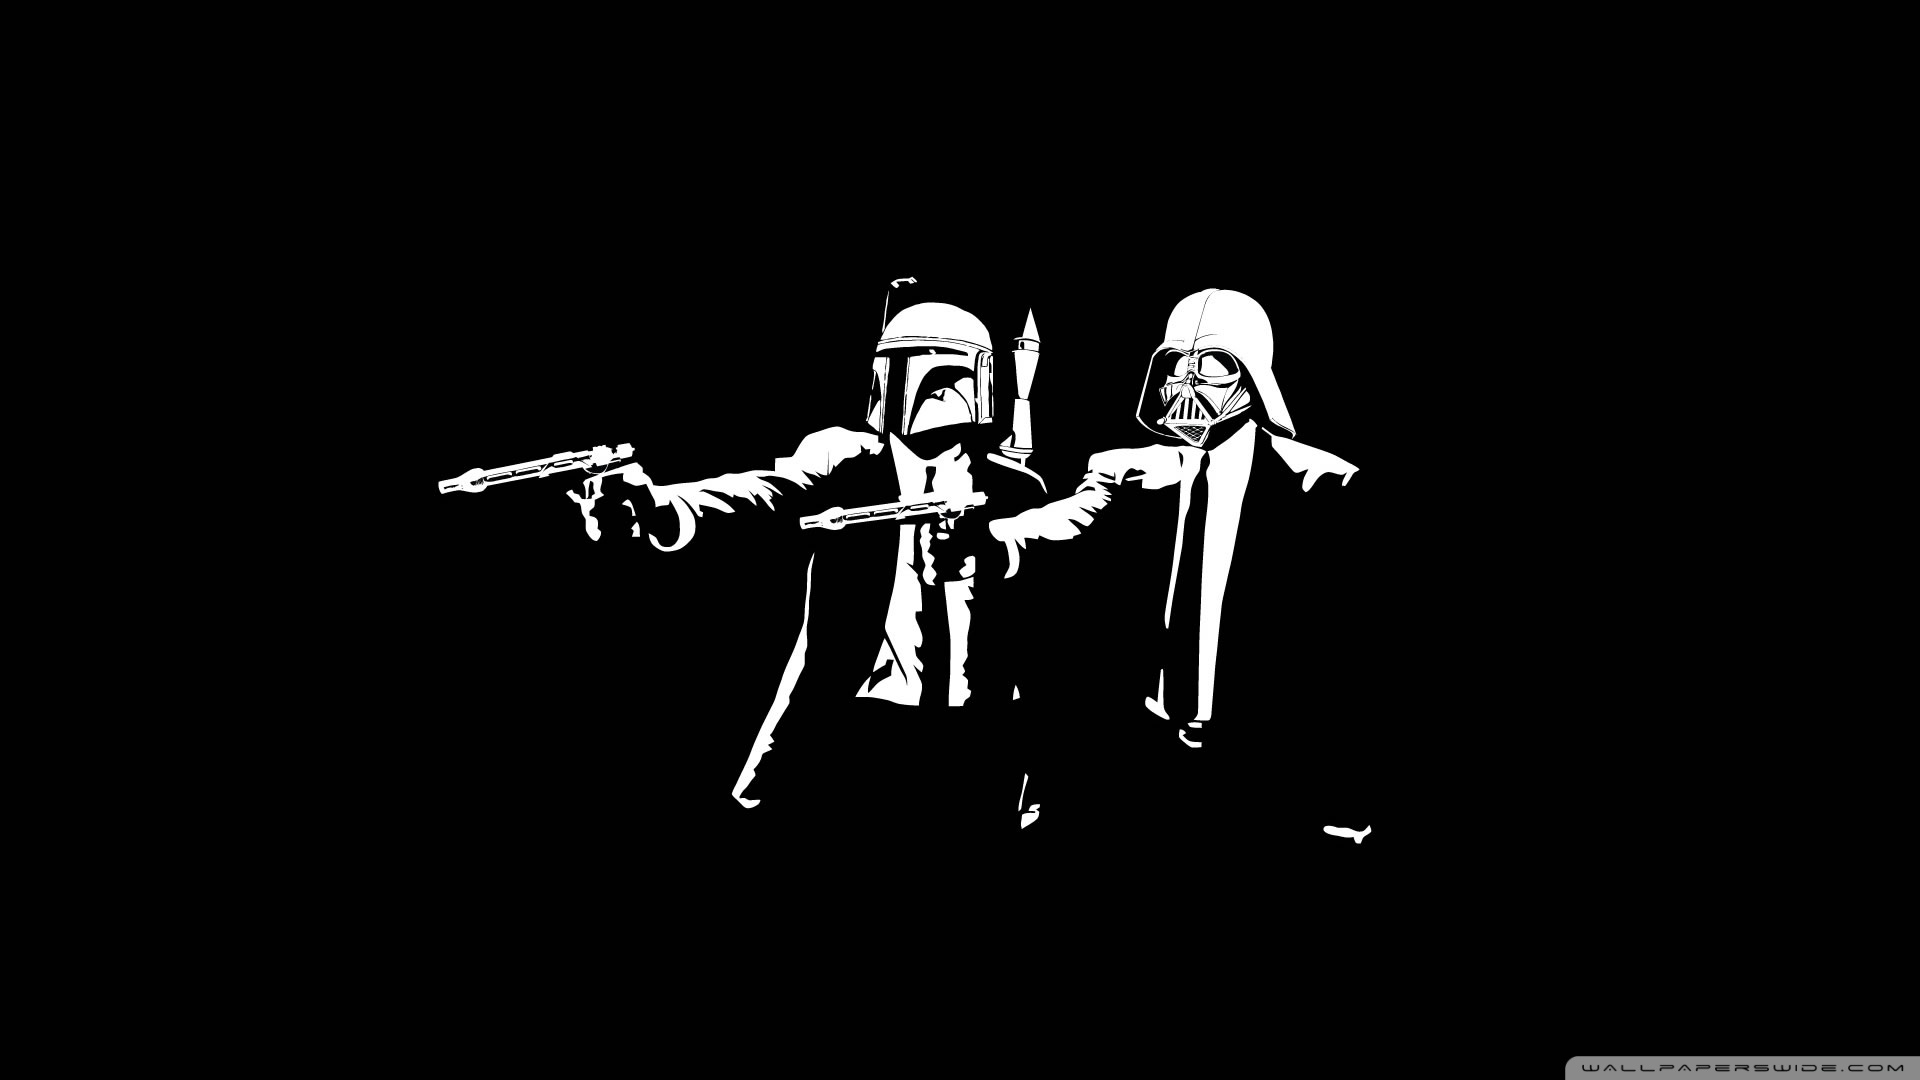 Star Wars Pulp Fiction Ultra Hd Desktop Background Wallpaper